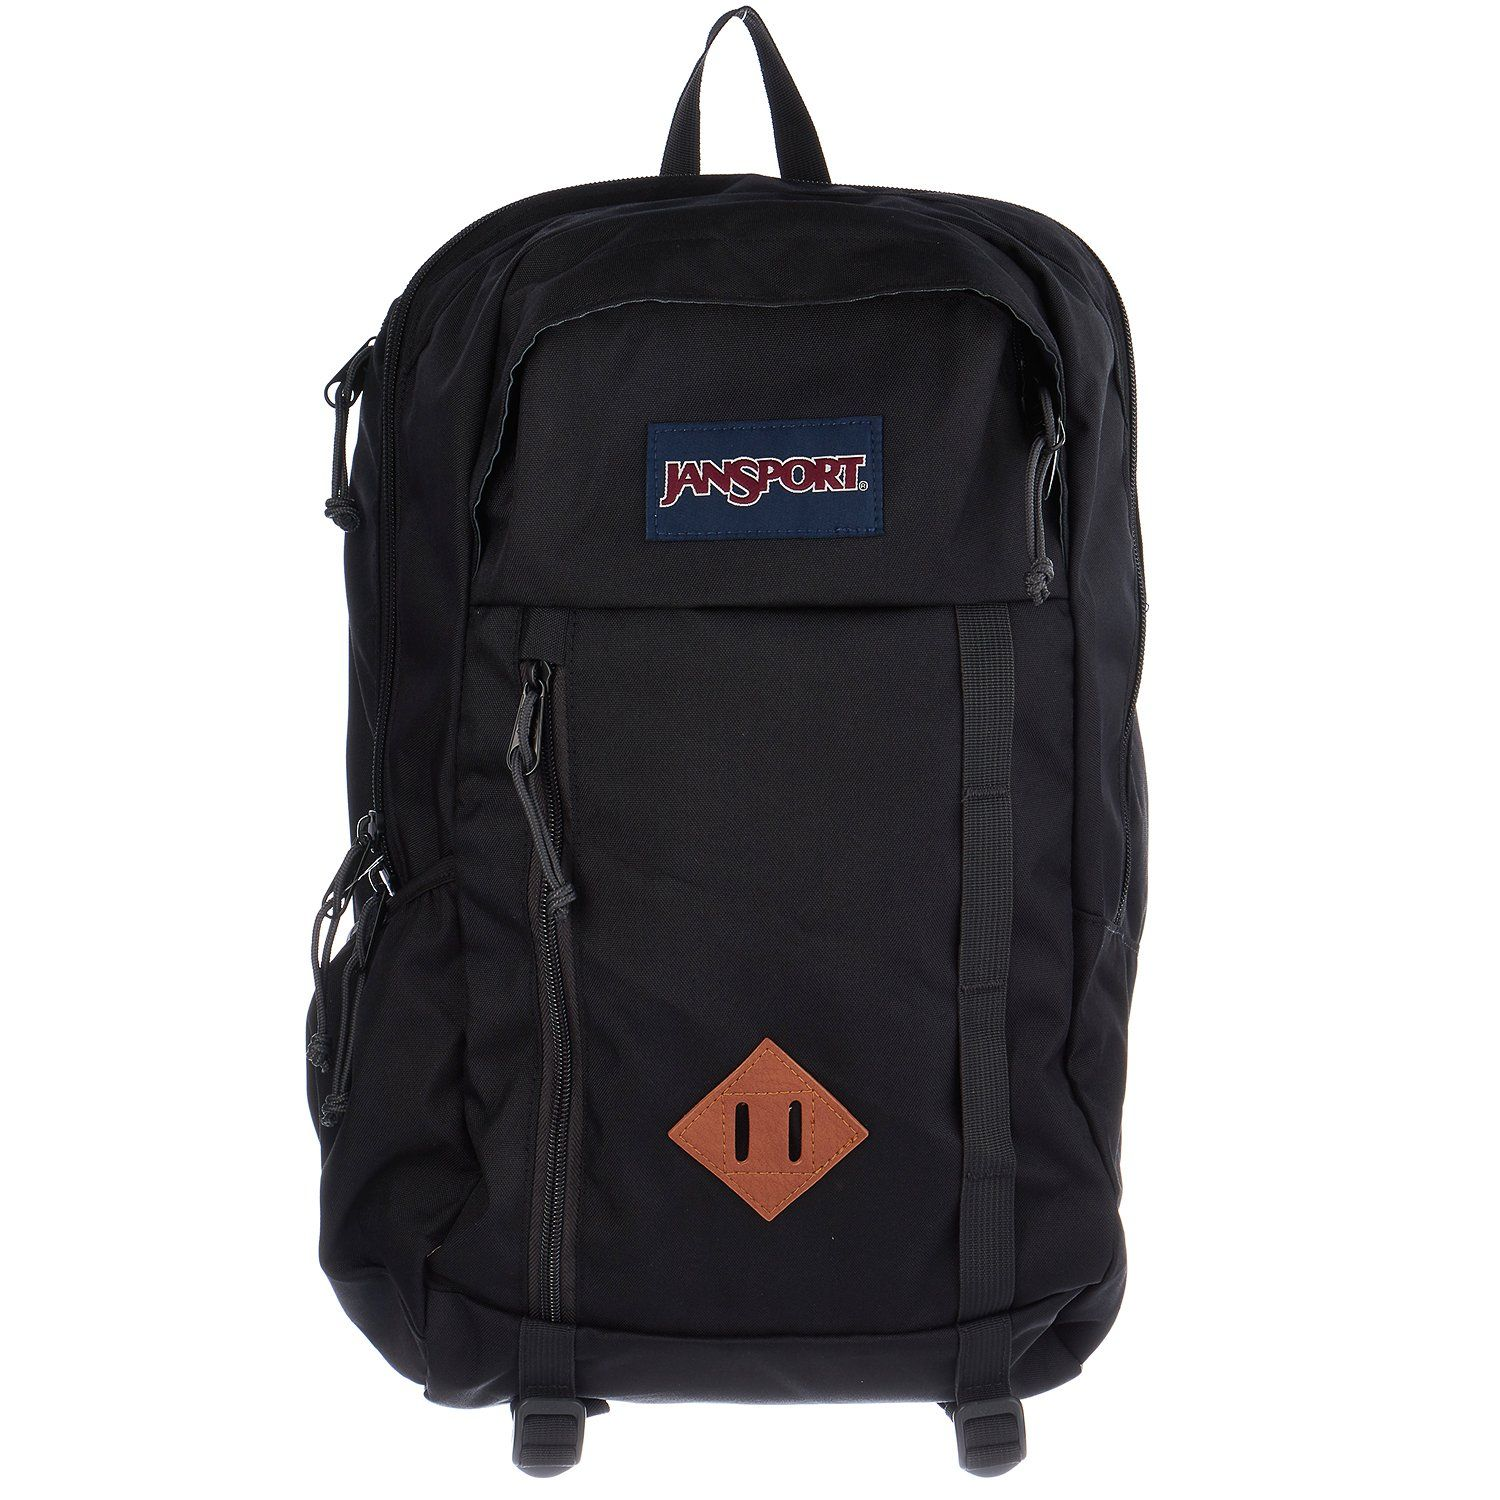 535d17a1f5 JanSport Mens Outside Mainstream Foxhole Backpack - Black   18